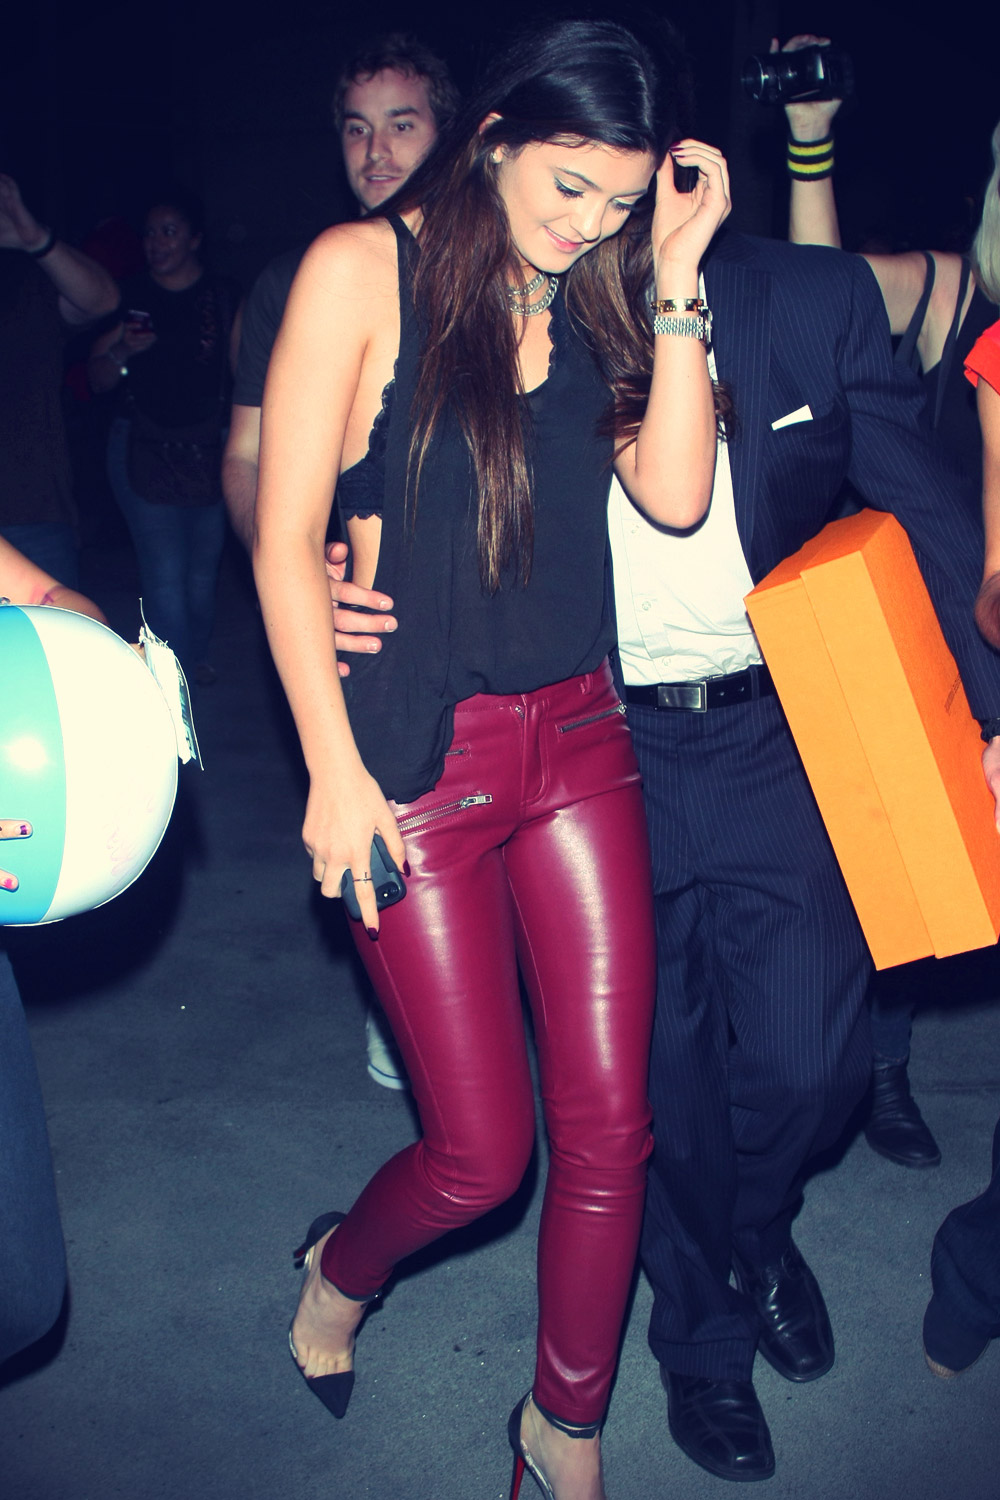 Kylie Jenner leaving Justin Bieber show at The Staples Center